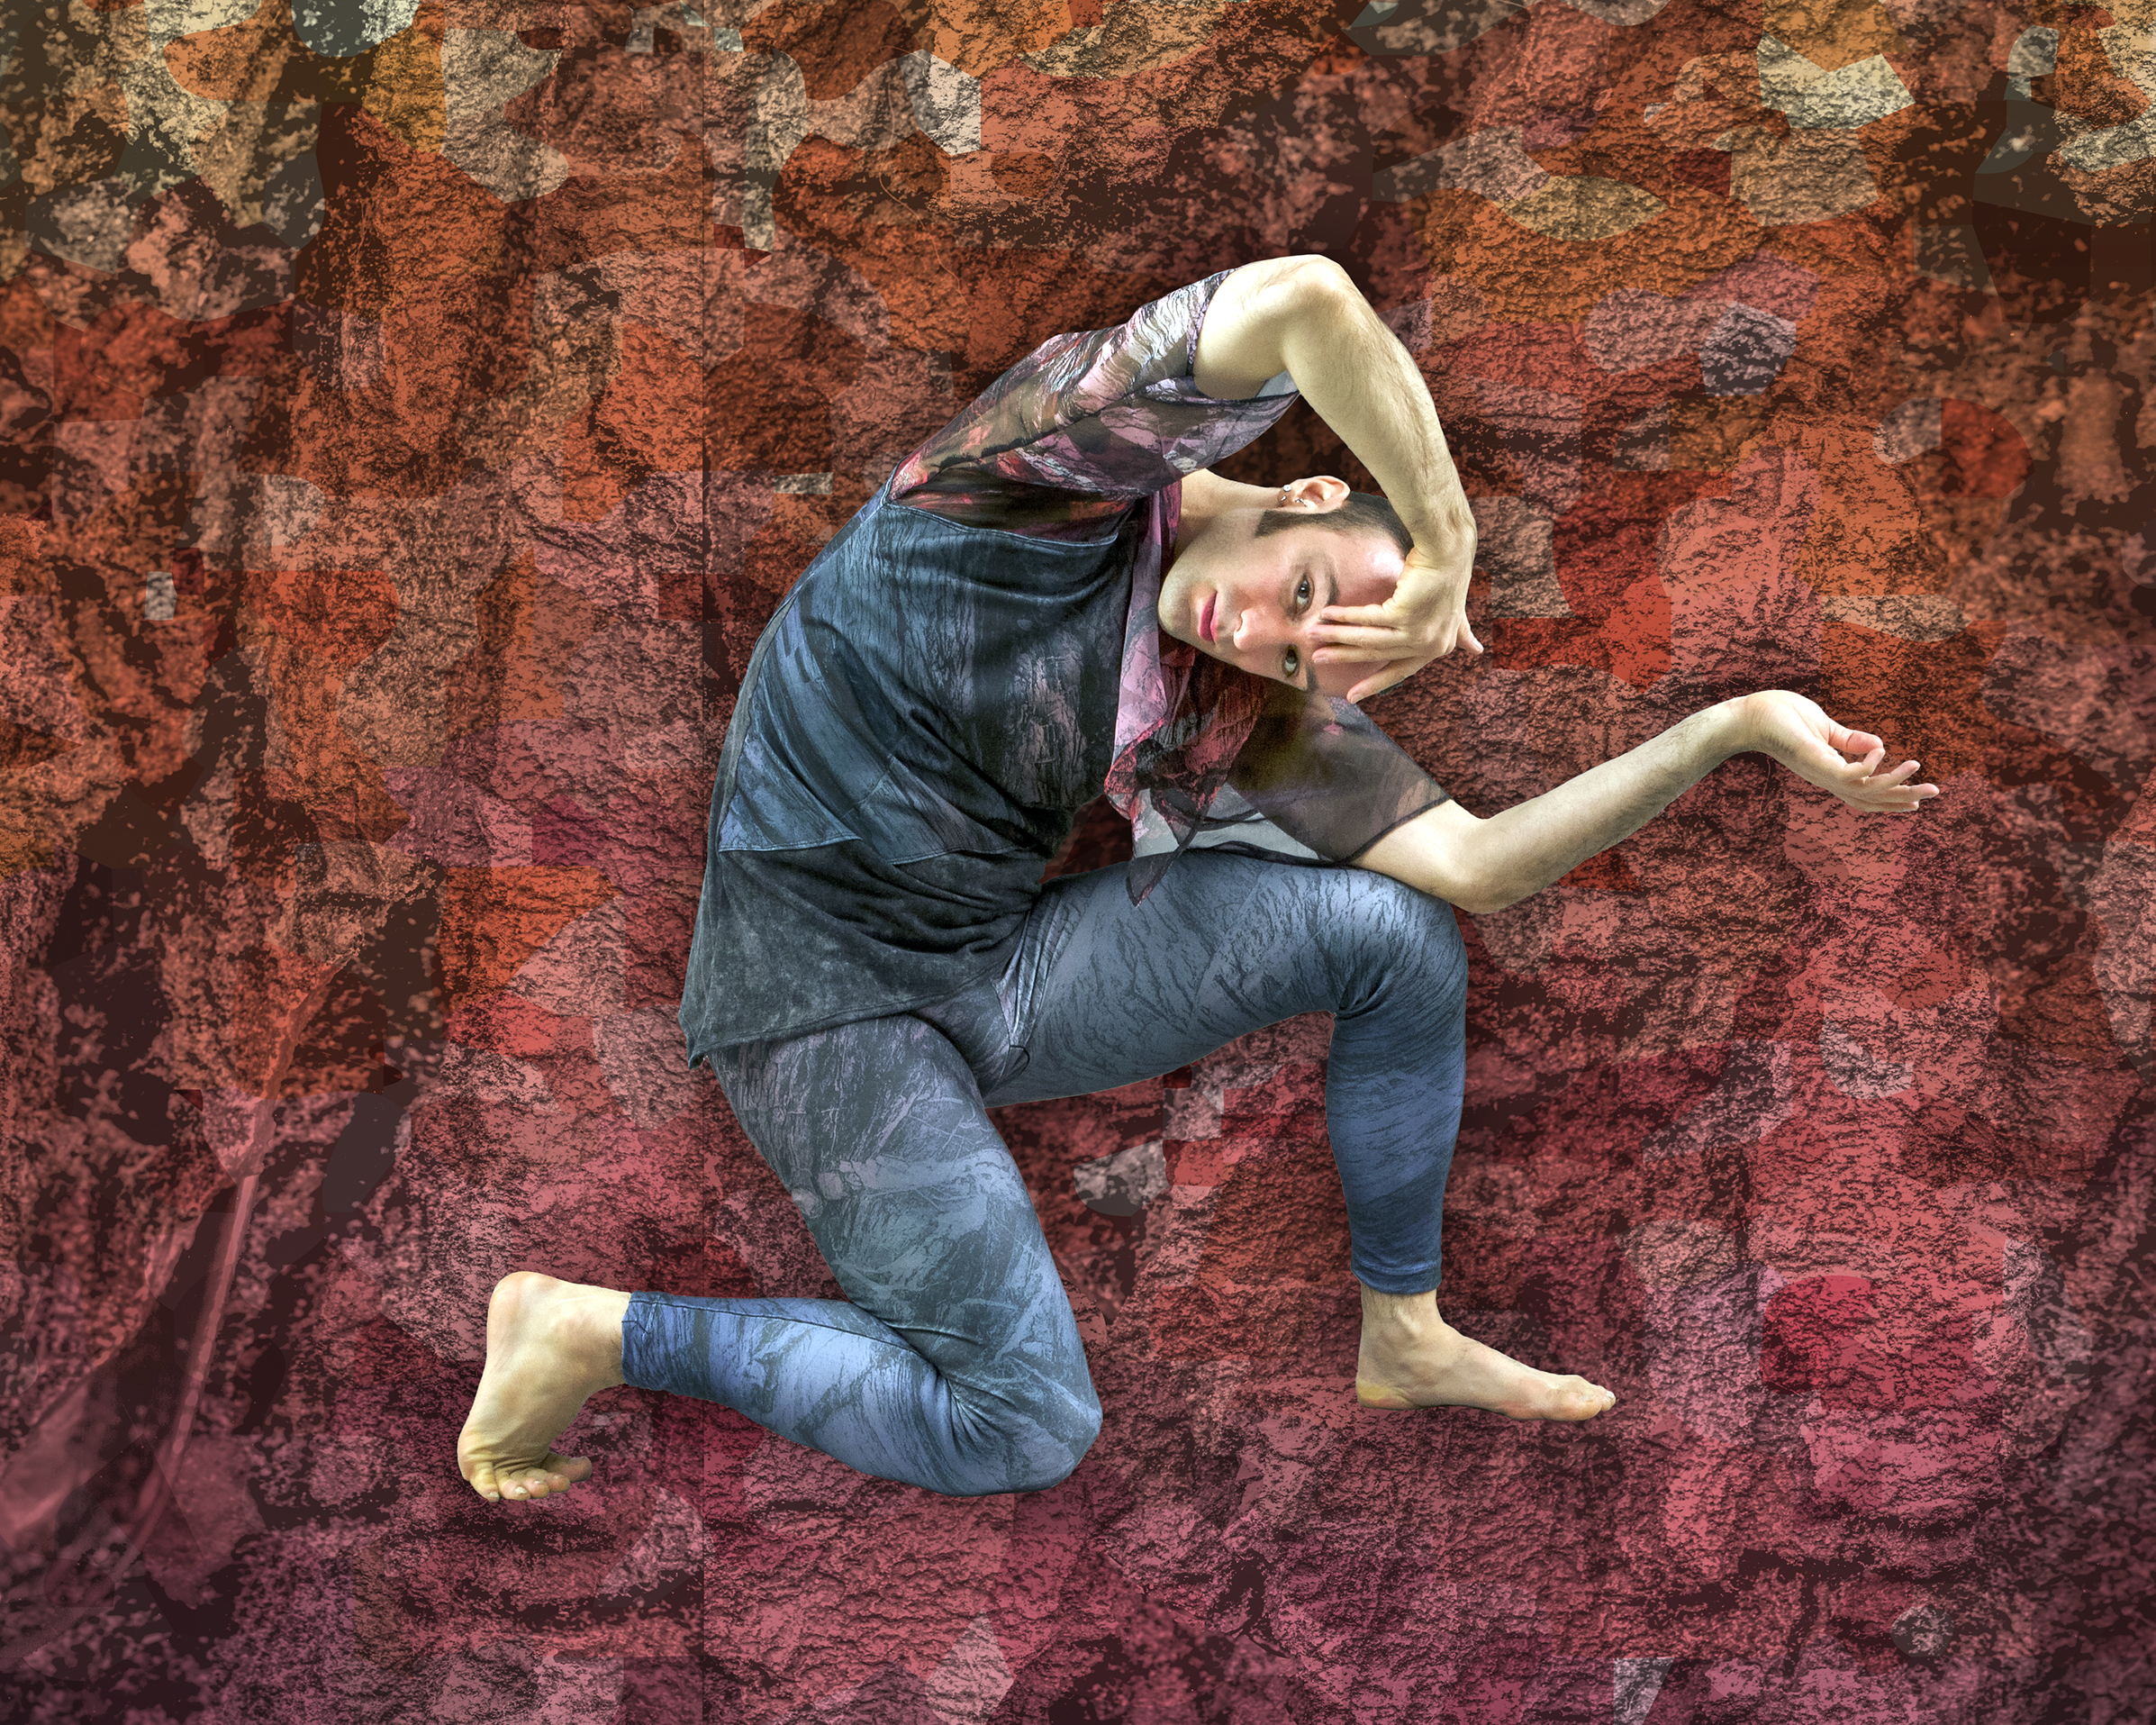 Crag,  2019. Design andytoad; Photo by Andrew Jordan. Dancer: Christopher Williams